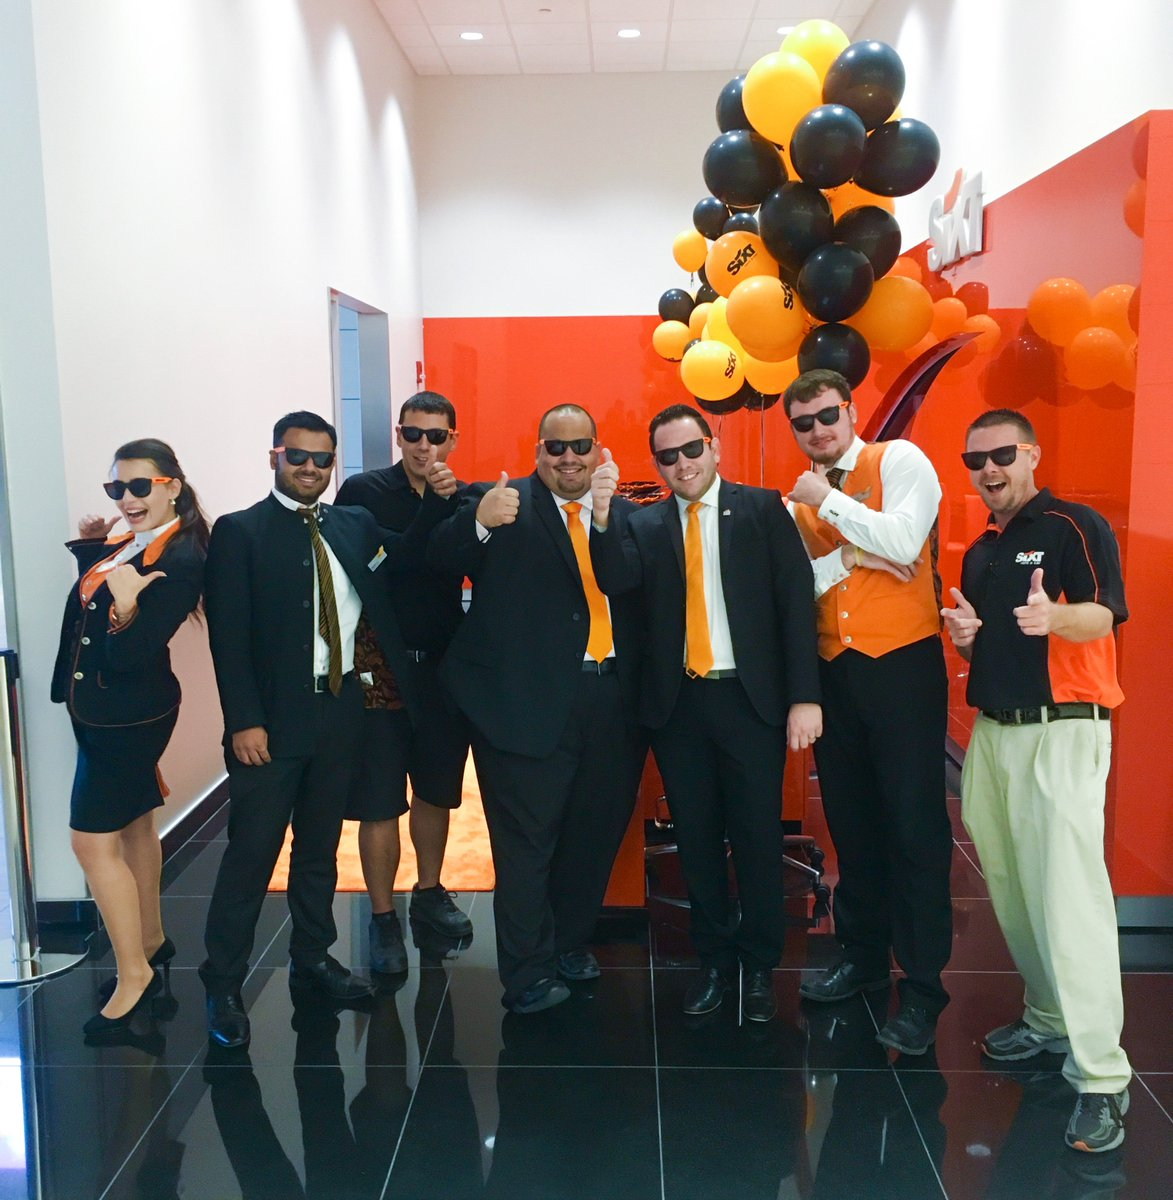 Sixt Rent A Car USA (@SixtUSA)